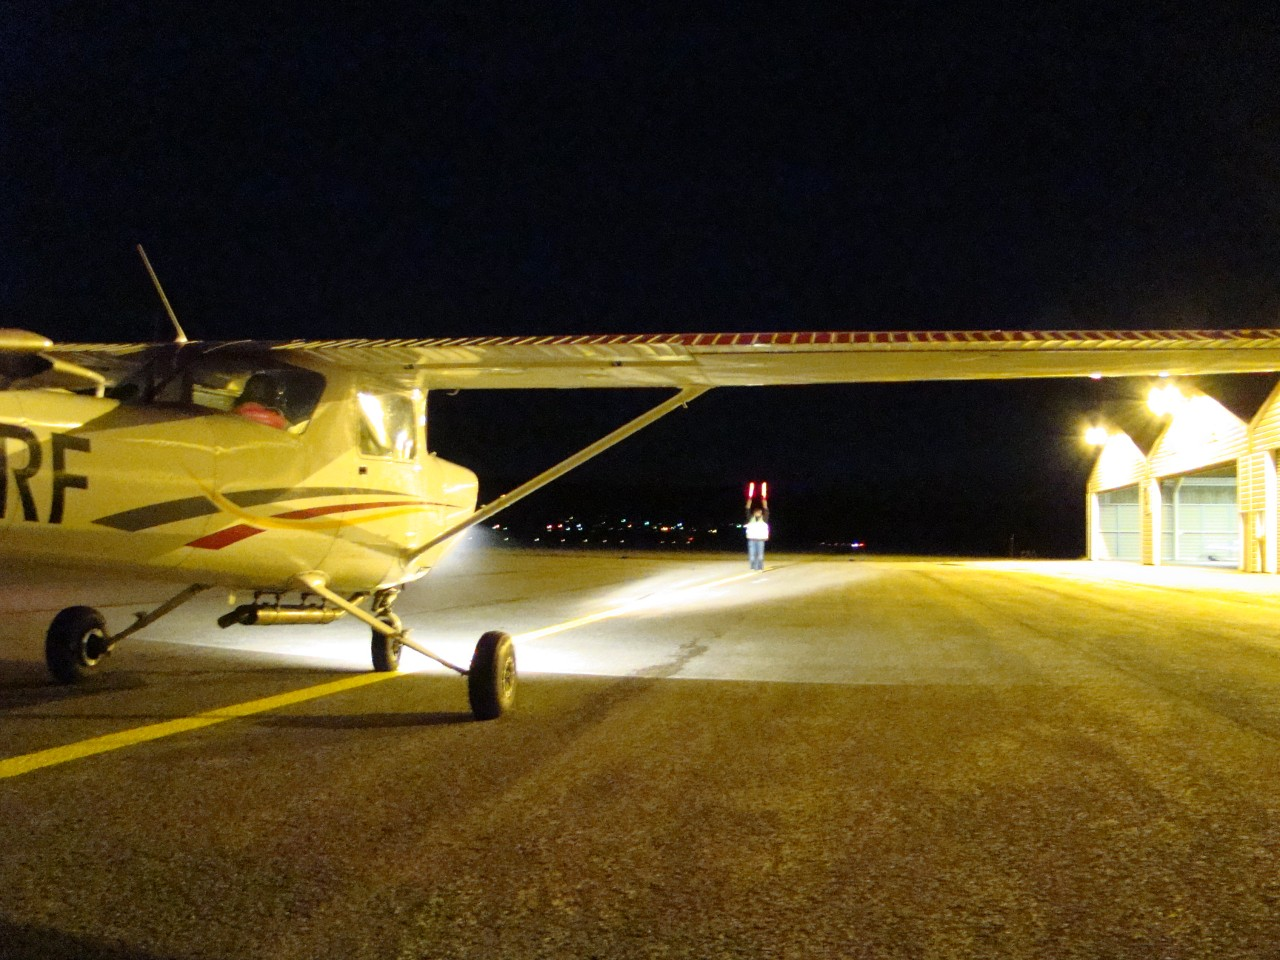 Le Cessna 152 au parking pour un vol local